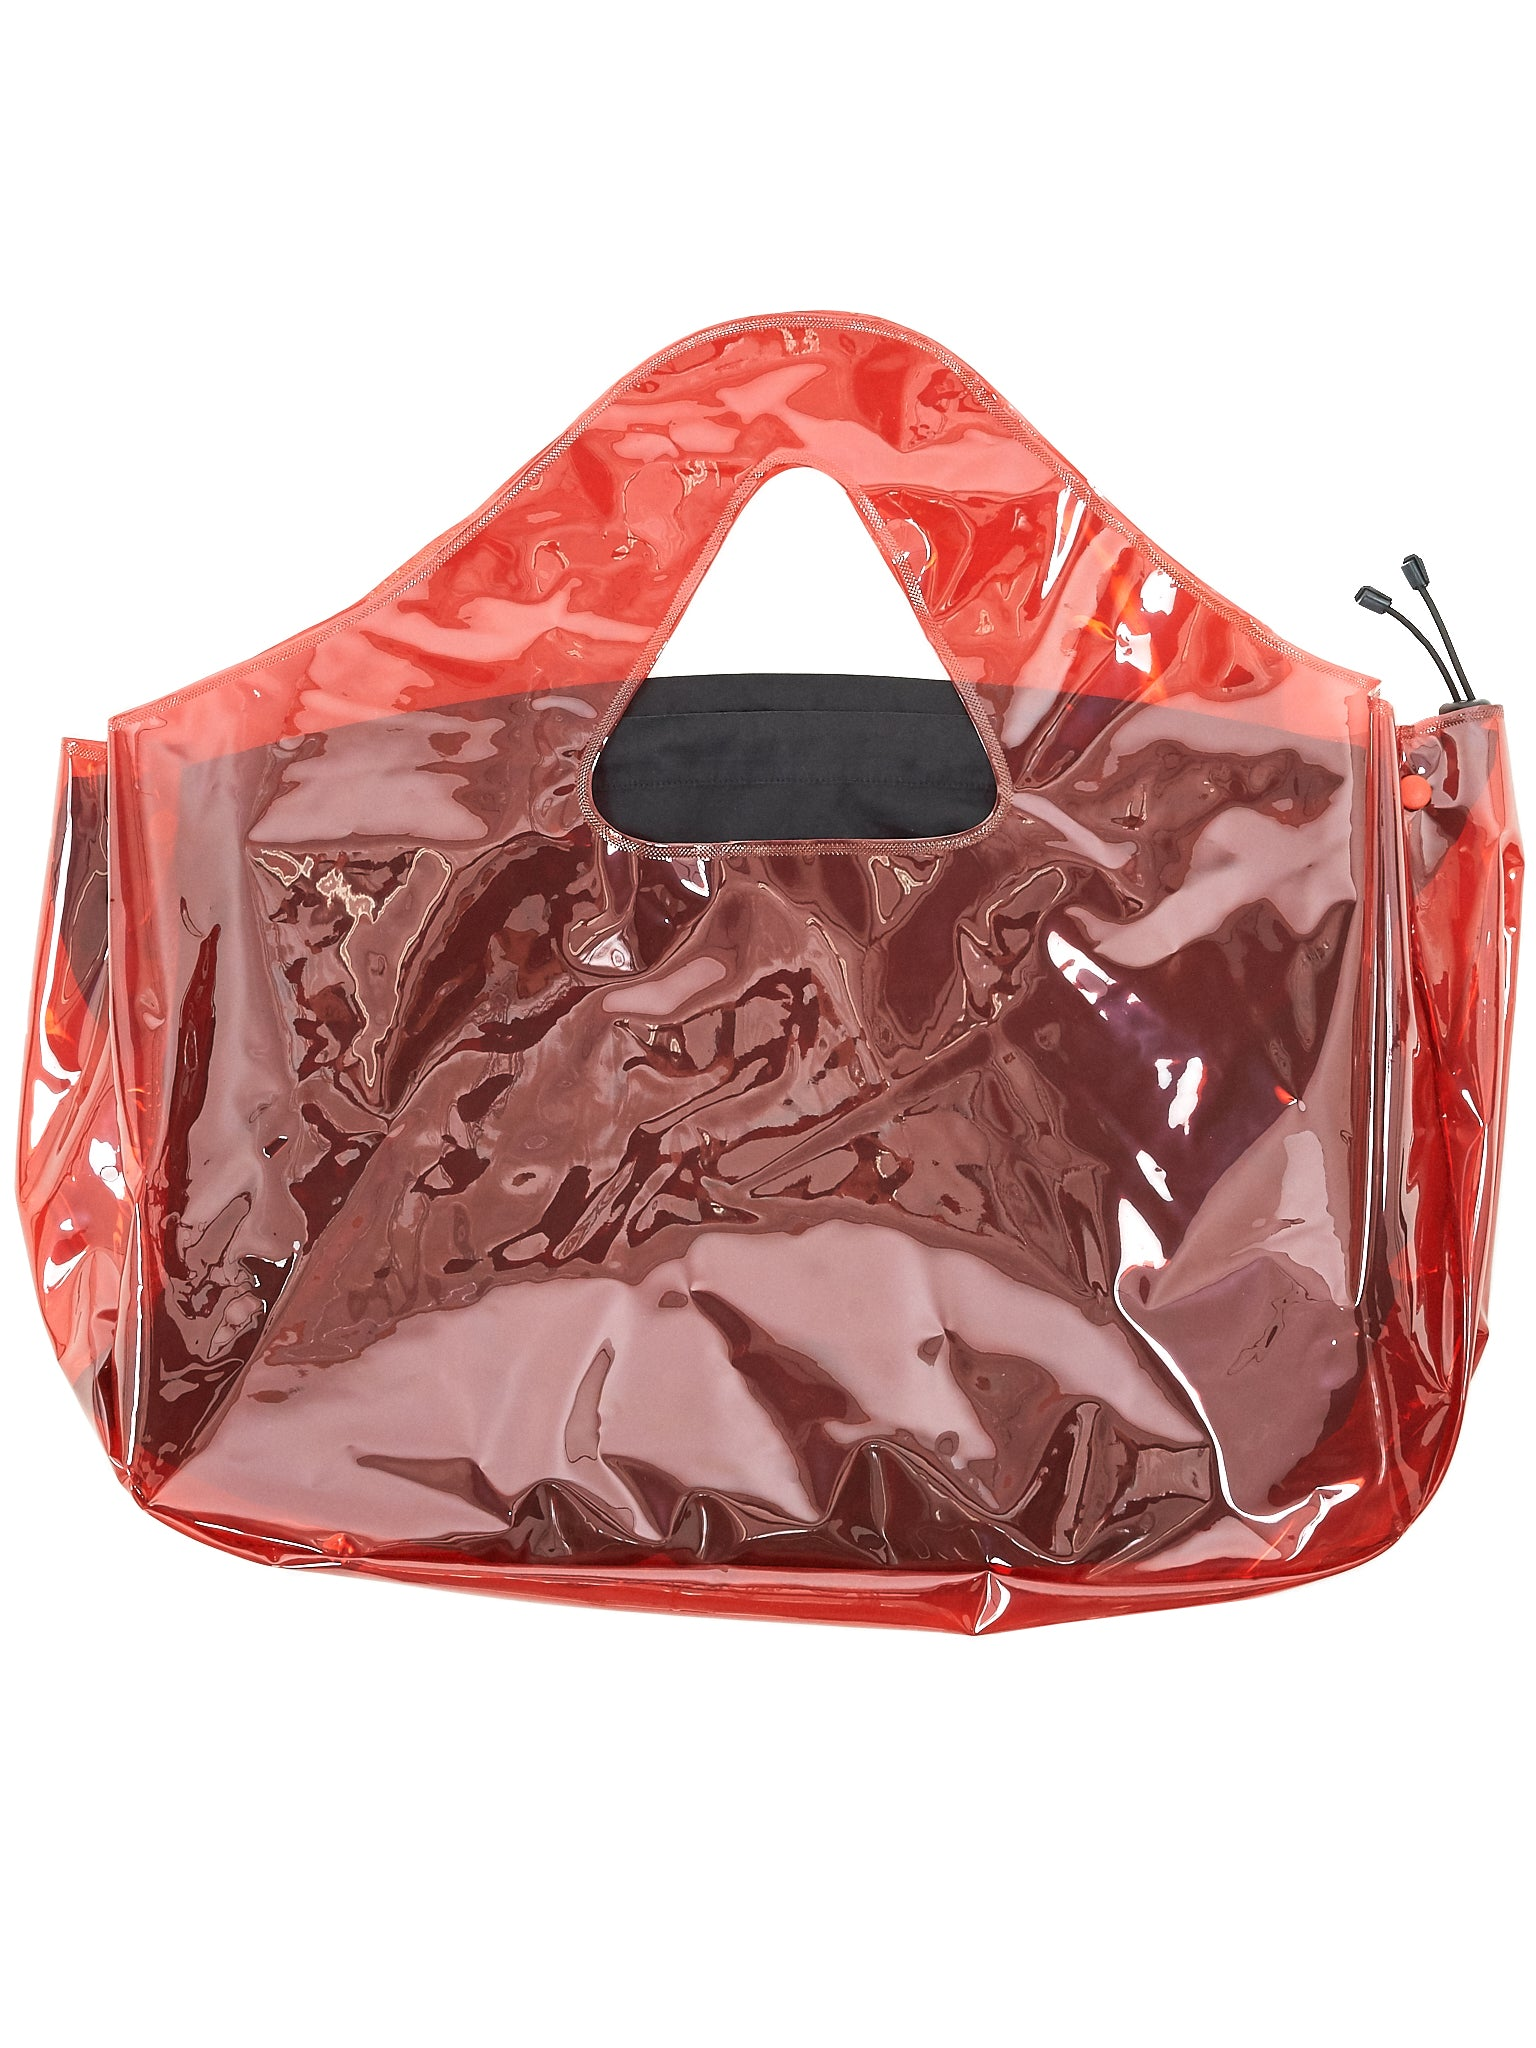 Layered Drawstring Handbag (A10-TRANSPARENT-RED)